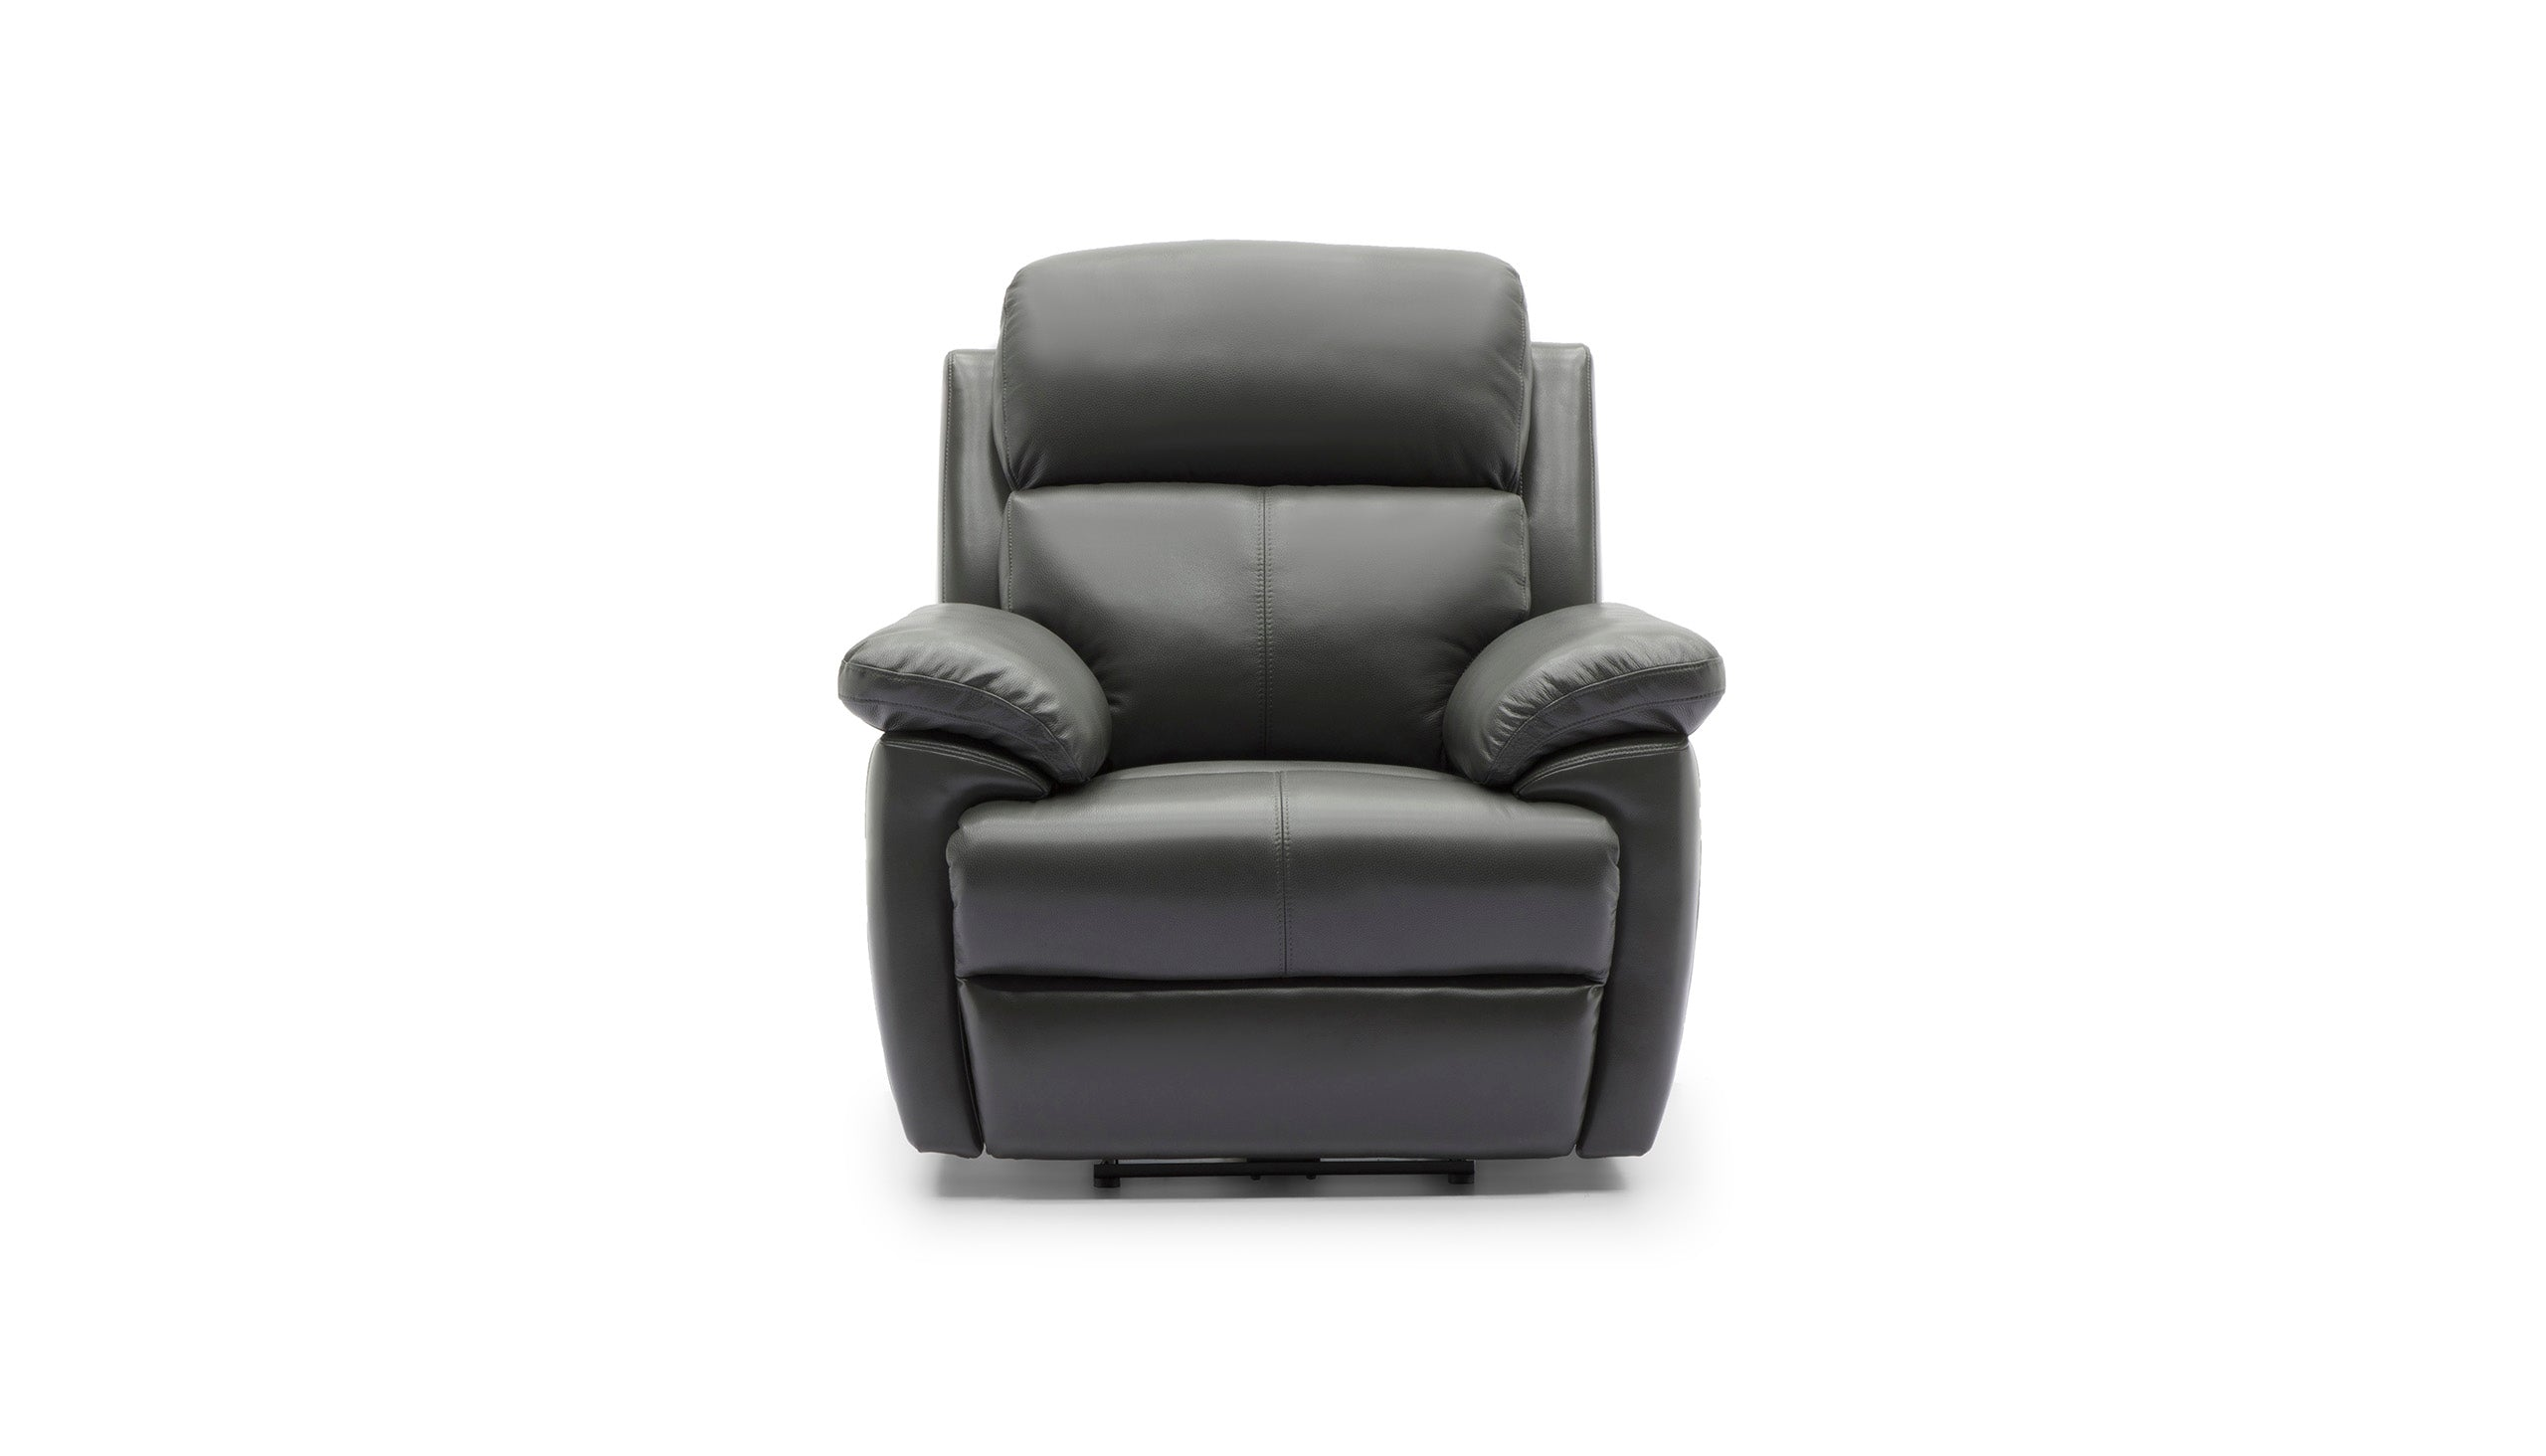 Blair Power Recliner Armchair with Power Headrest in Leather